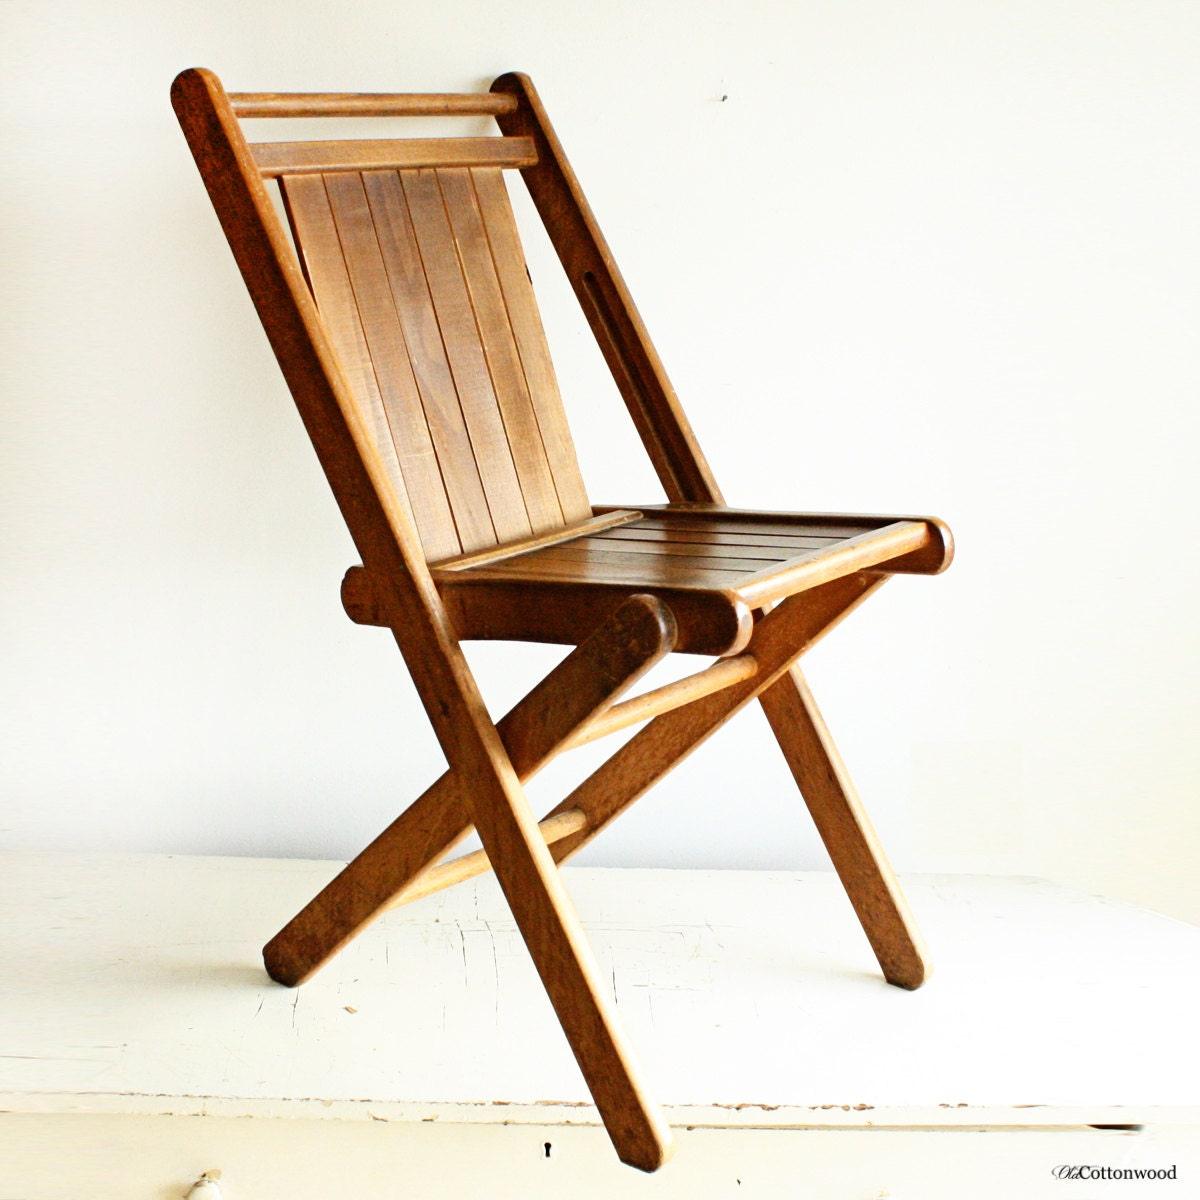 Vintage Wood Folding Chair Wood Slats All Solid Hardwood